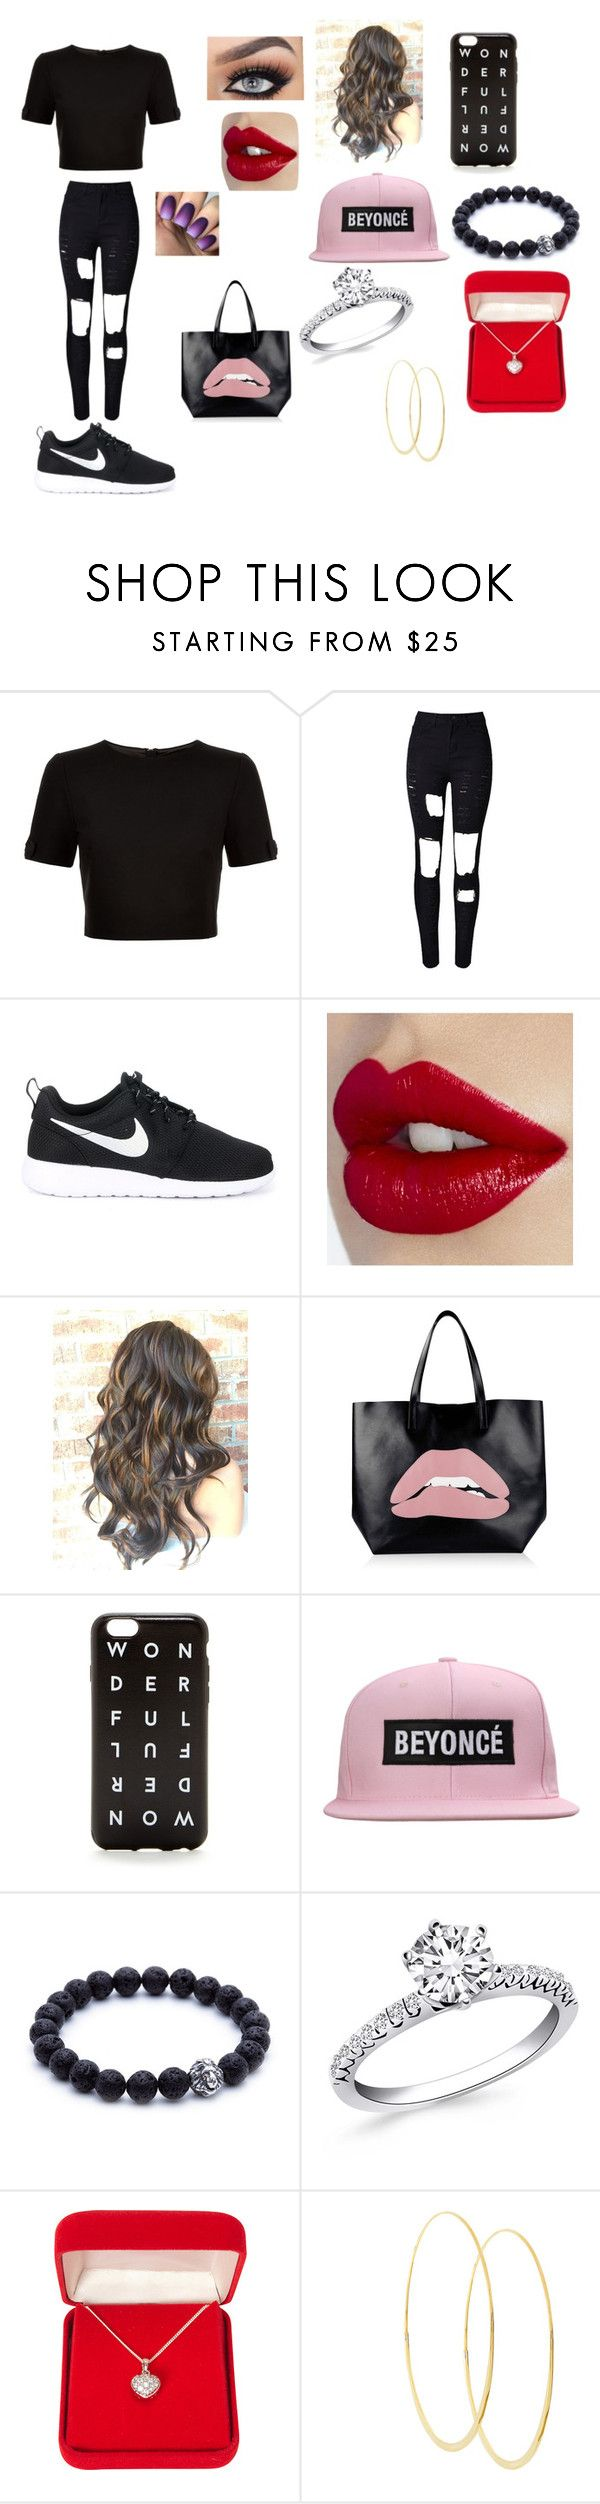 Untitled #5 by julle-fangirl on Polyvore featuring Ted Baker, WithChic, NIKE, RED Valentino, Lana, Alexa Starr and J.Crew